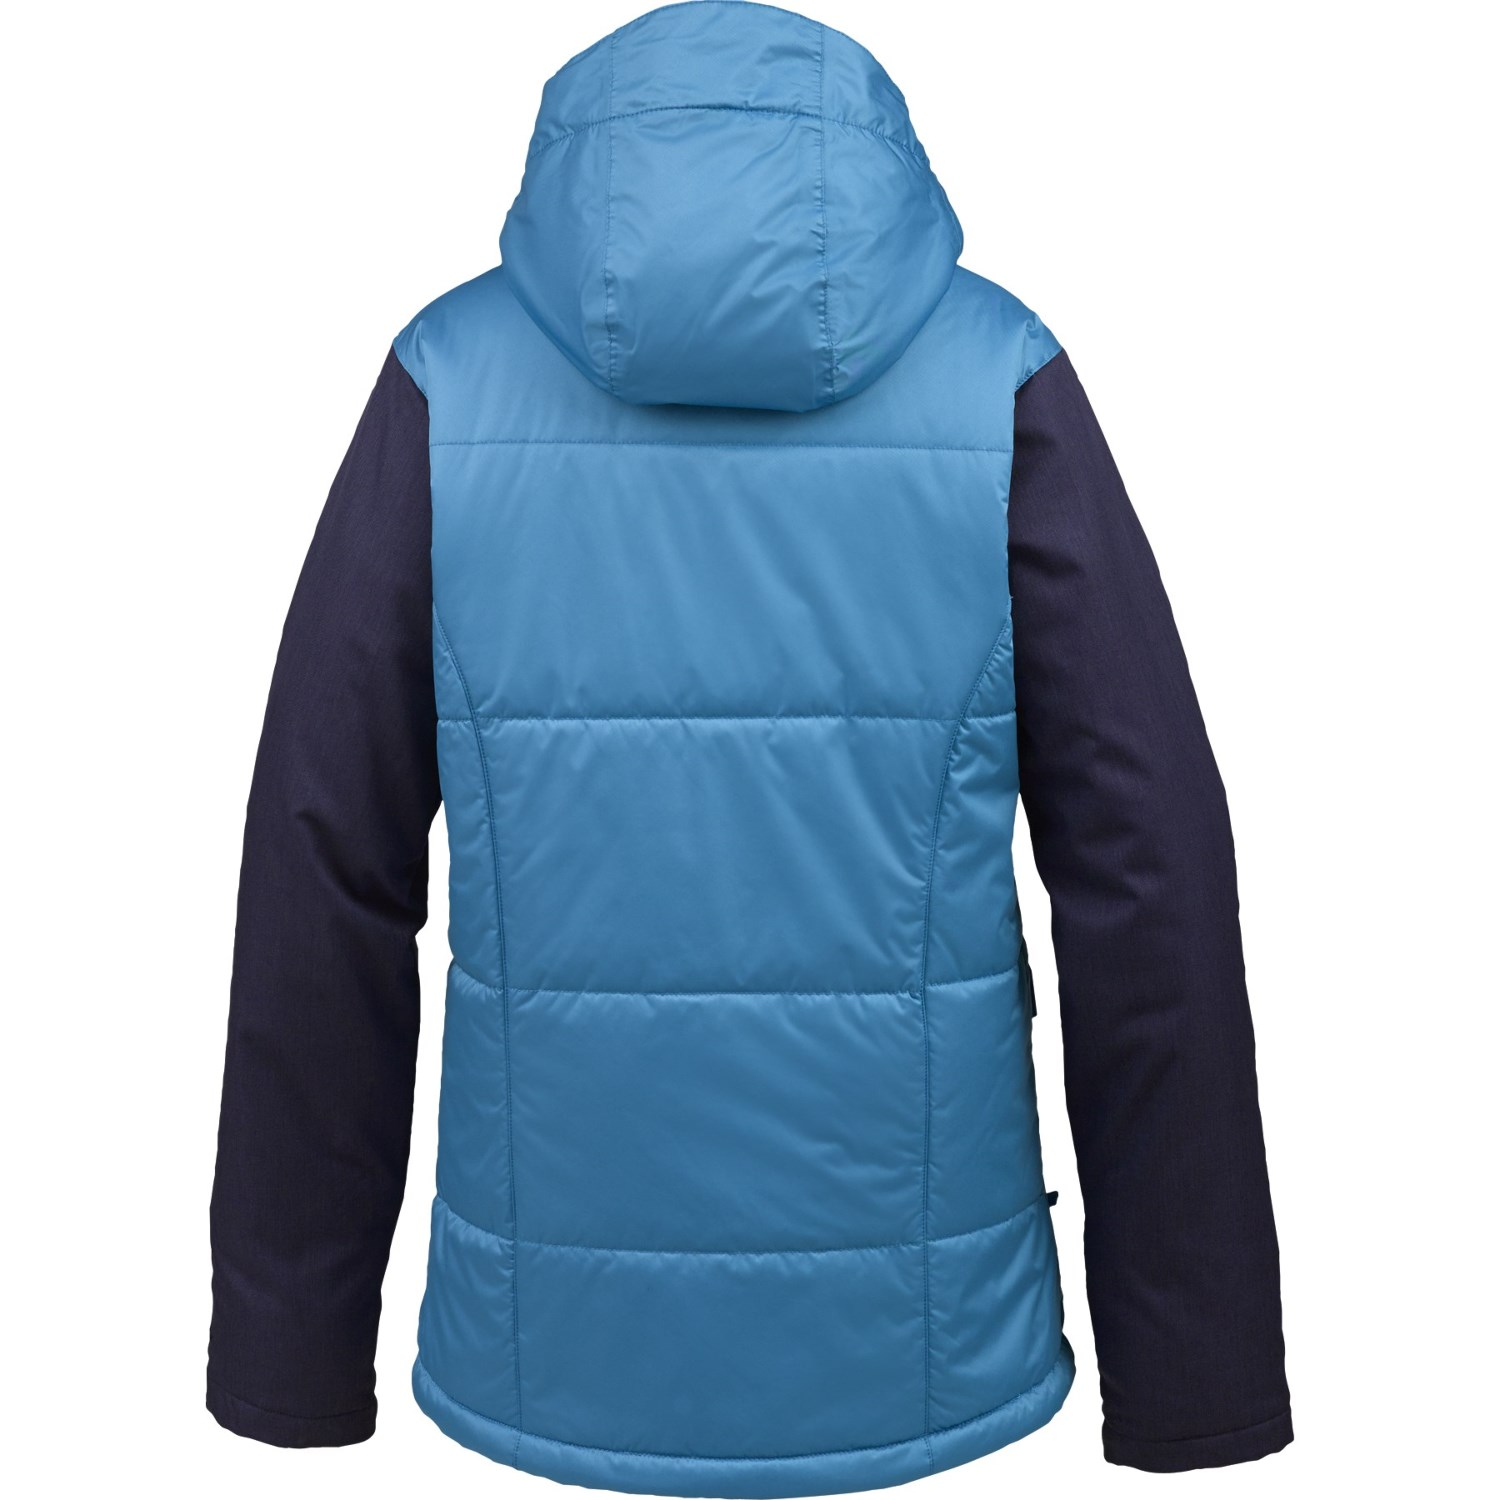 Womens snowboarding jackets on clearance